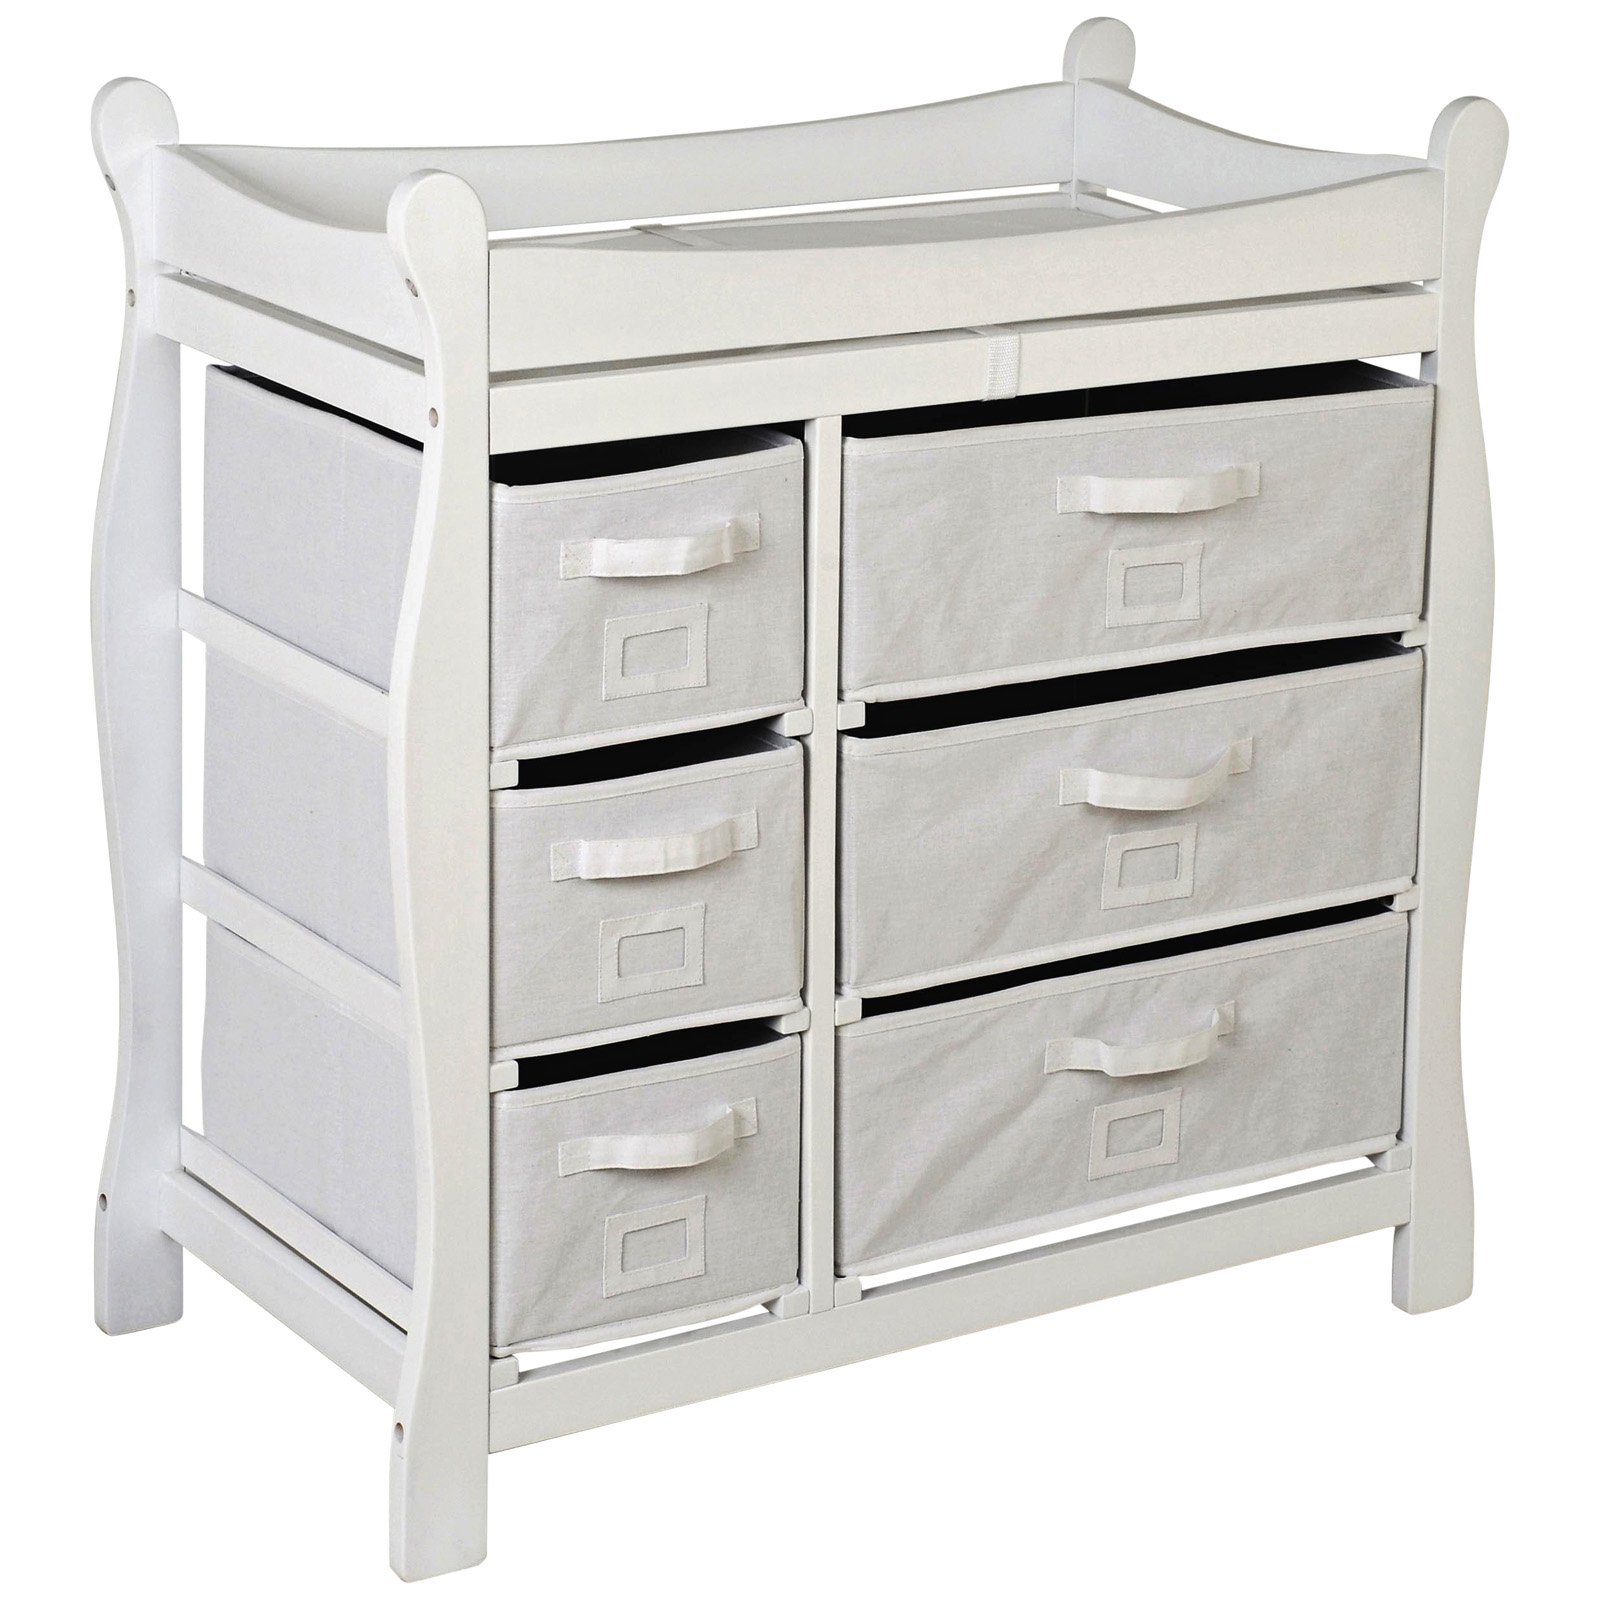 Badger Basket Changing Table with Six Baskets, White by Badger Basket